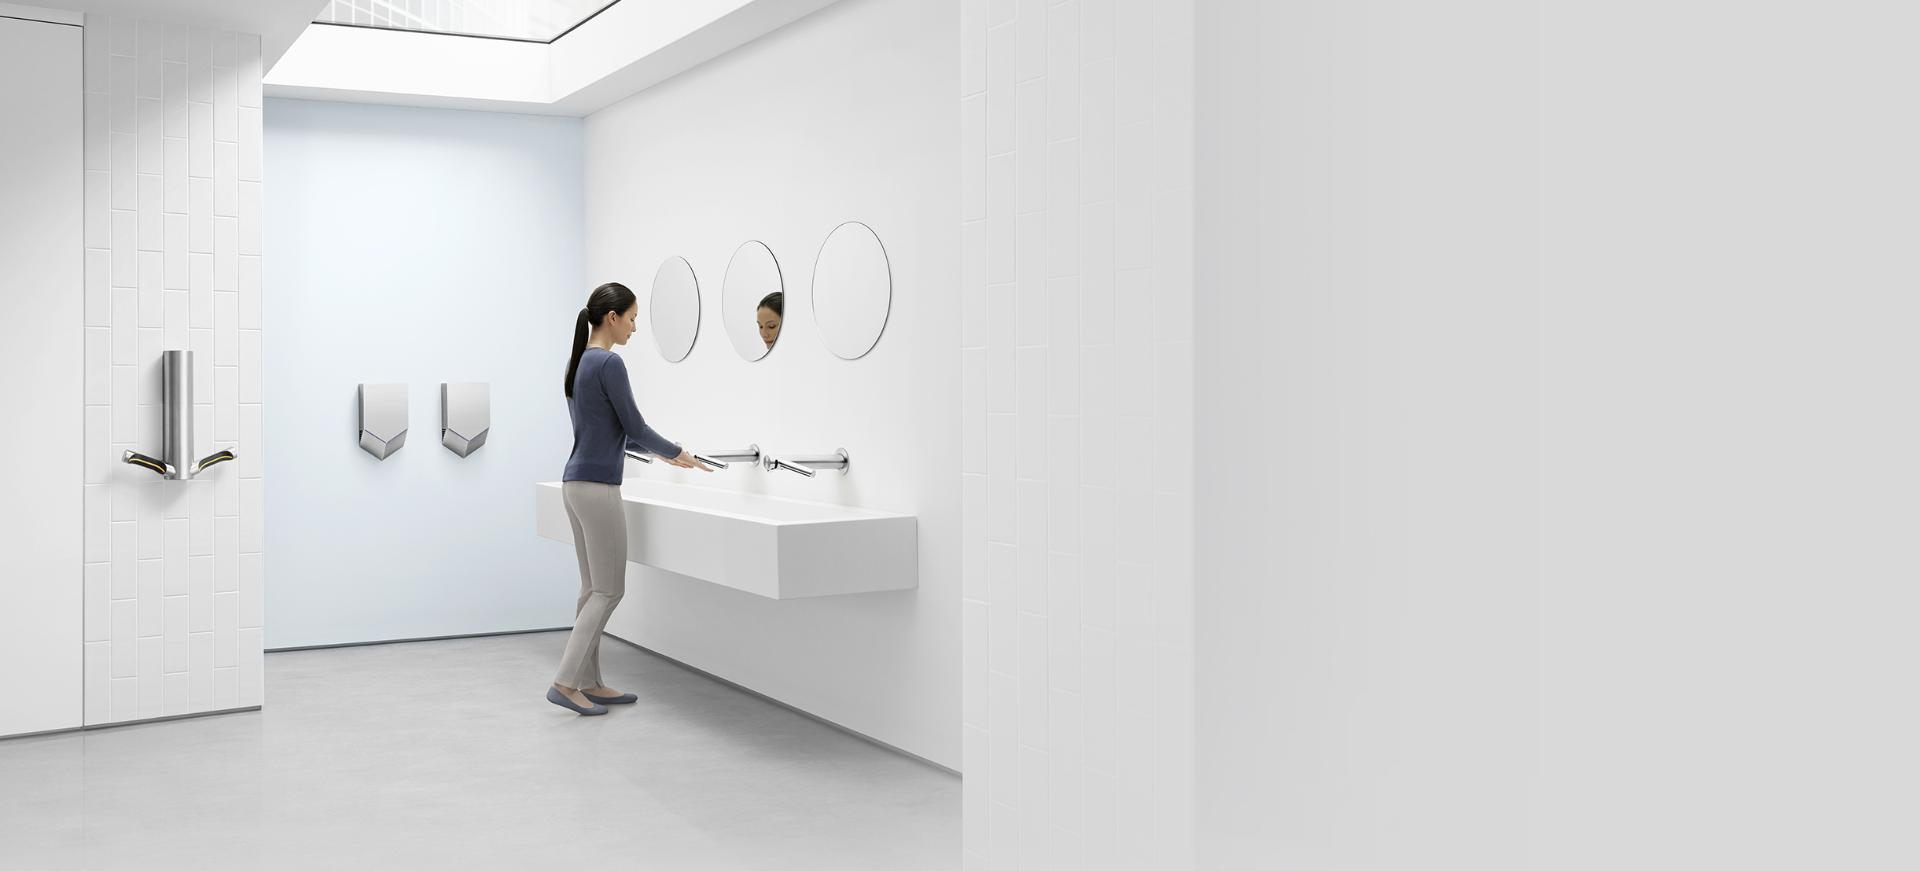 Woman drying hands with the Dyson Airblade Wash+Dry hand dryer